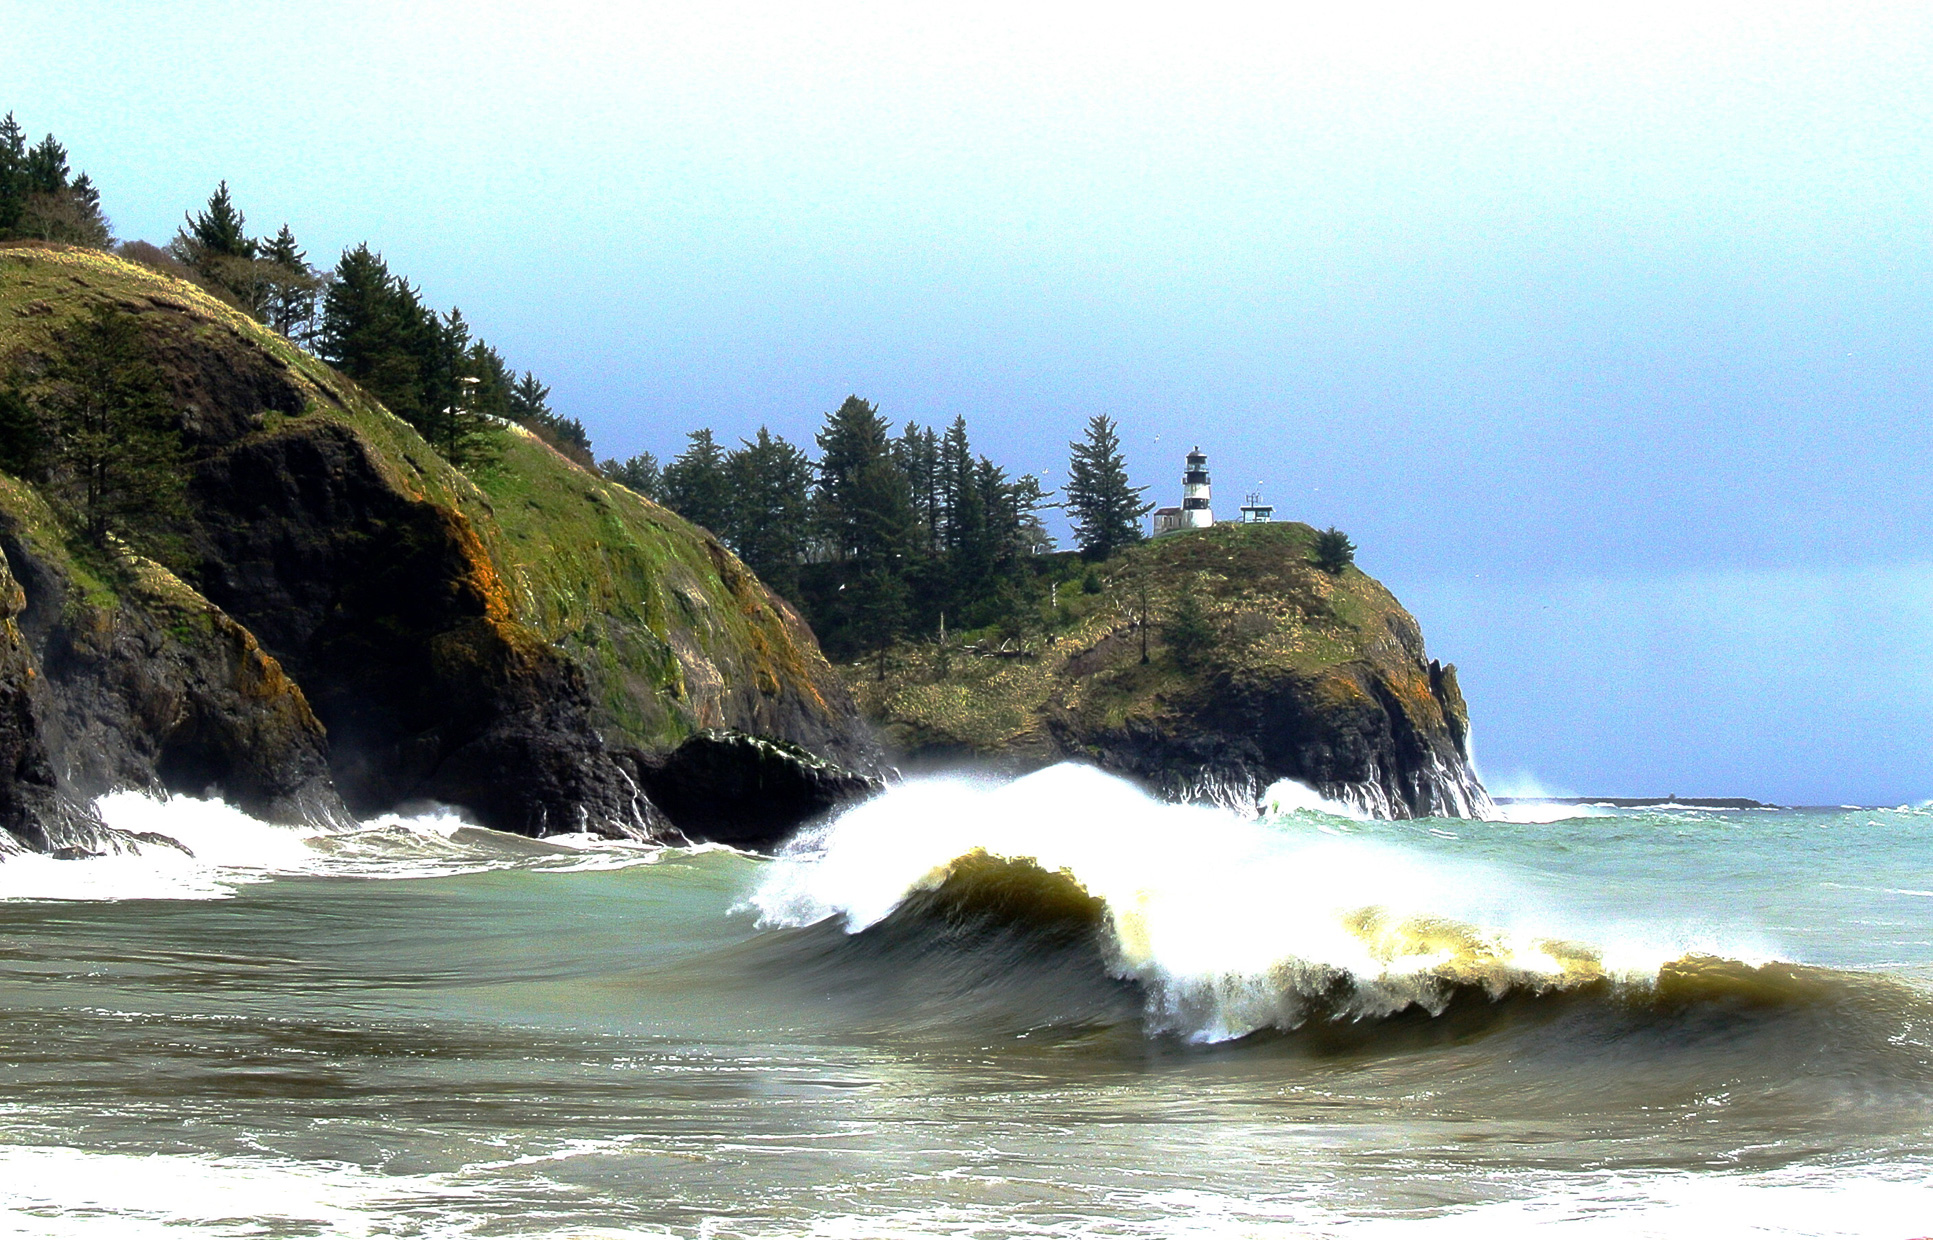 APERTURA-Cape_Disappointment_-Wikipedia_s